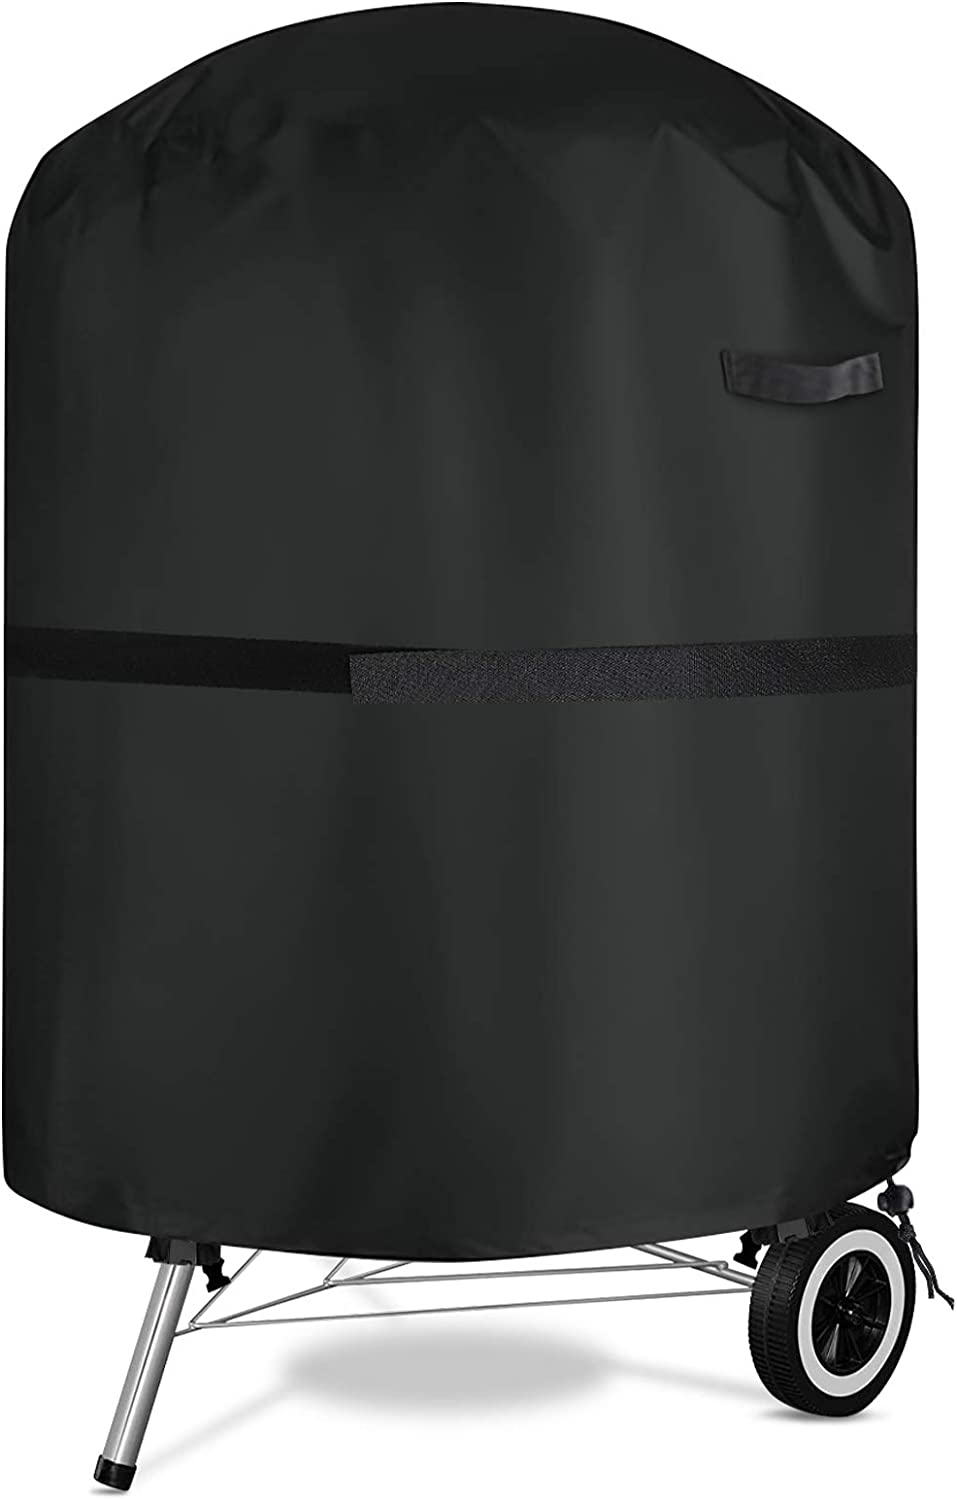 NASUM Grill Cover, 22-inch Charcoal Grill Covers Waterproof Heavy Duty, 600D BBQ Kettle Cover for Barbeque Grill of Weber, Brinkmann, Char-Broil, Jenn Air and Holland (28.5